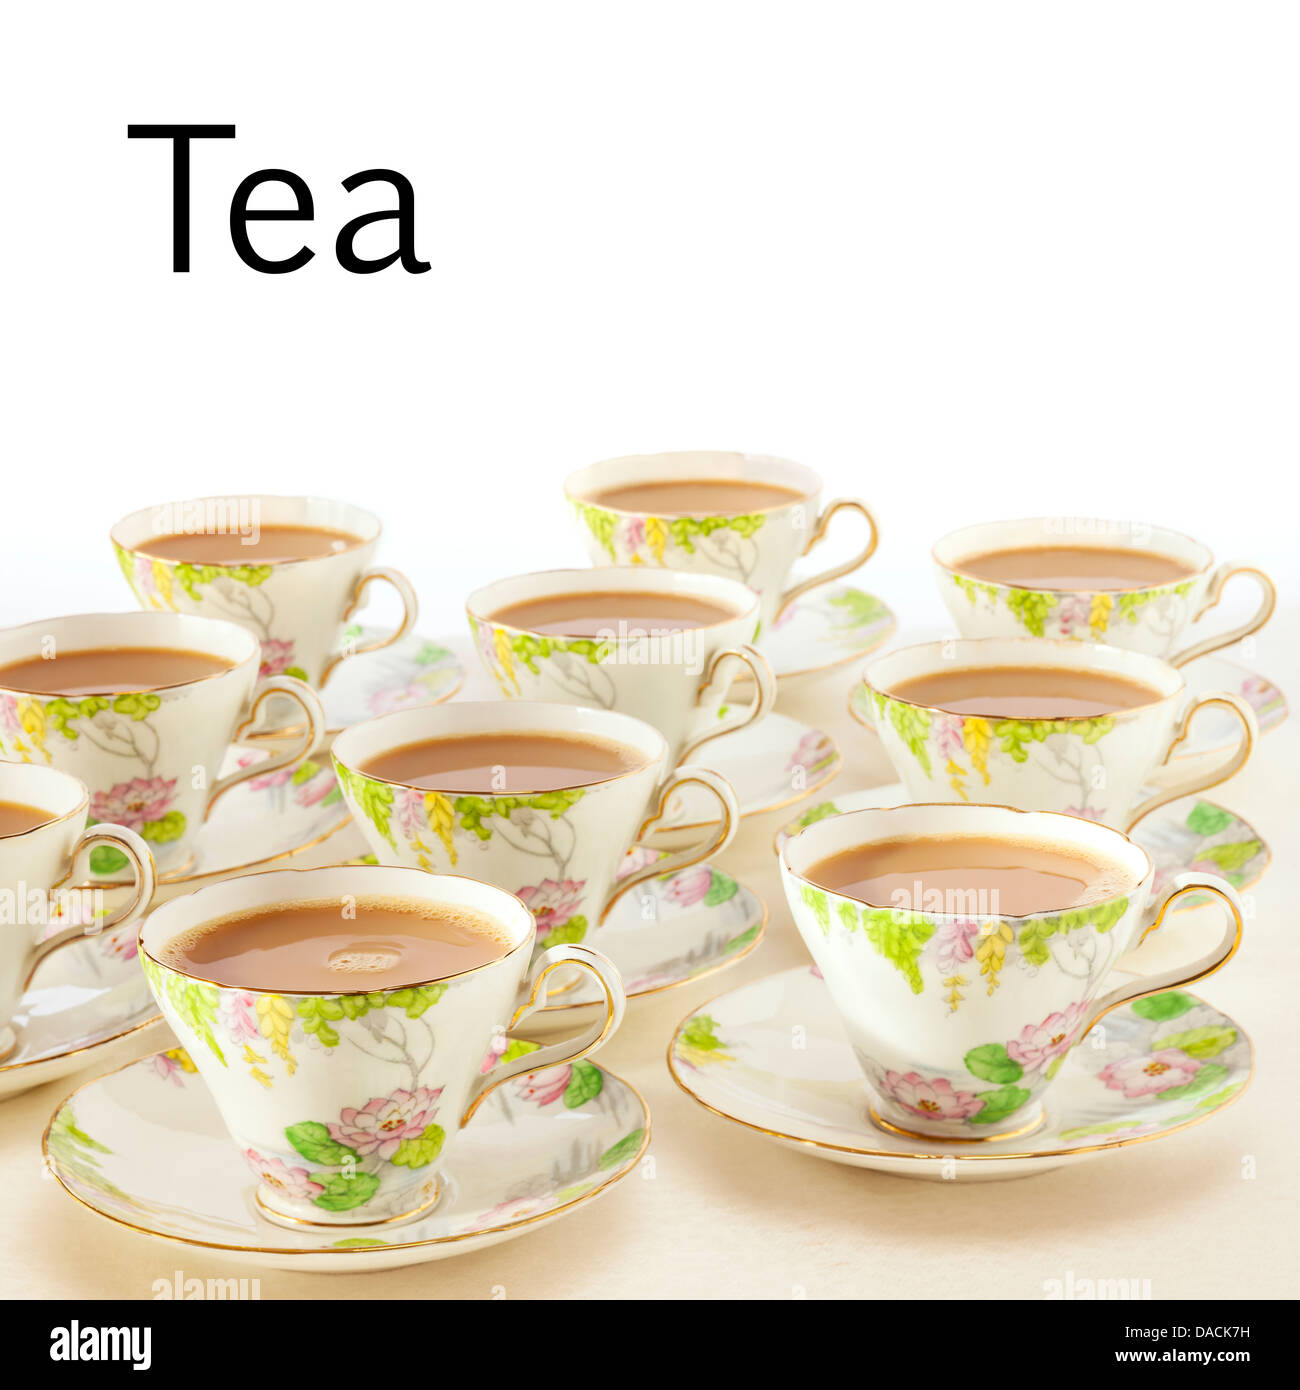 Tea Concept - cups of freshly poured tea in beautiful antique crockery. This image can be fully customised with - Stock Image